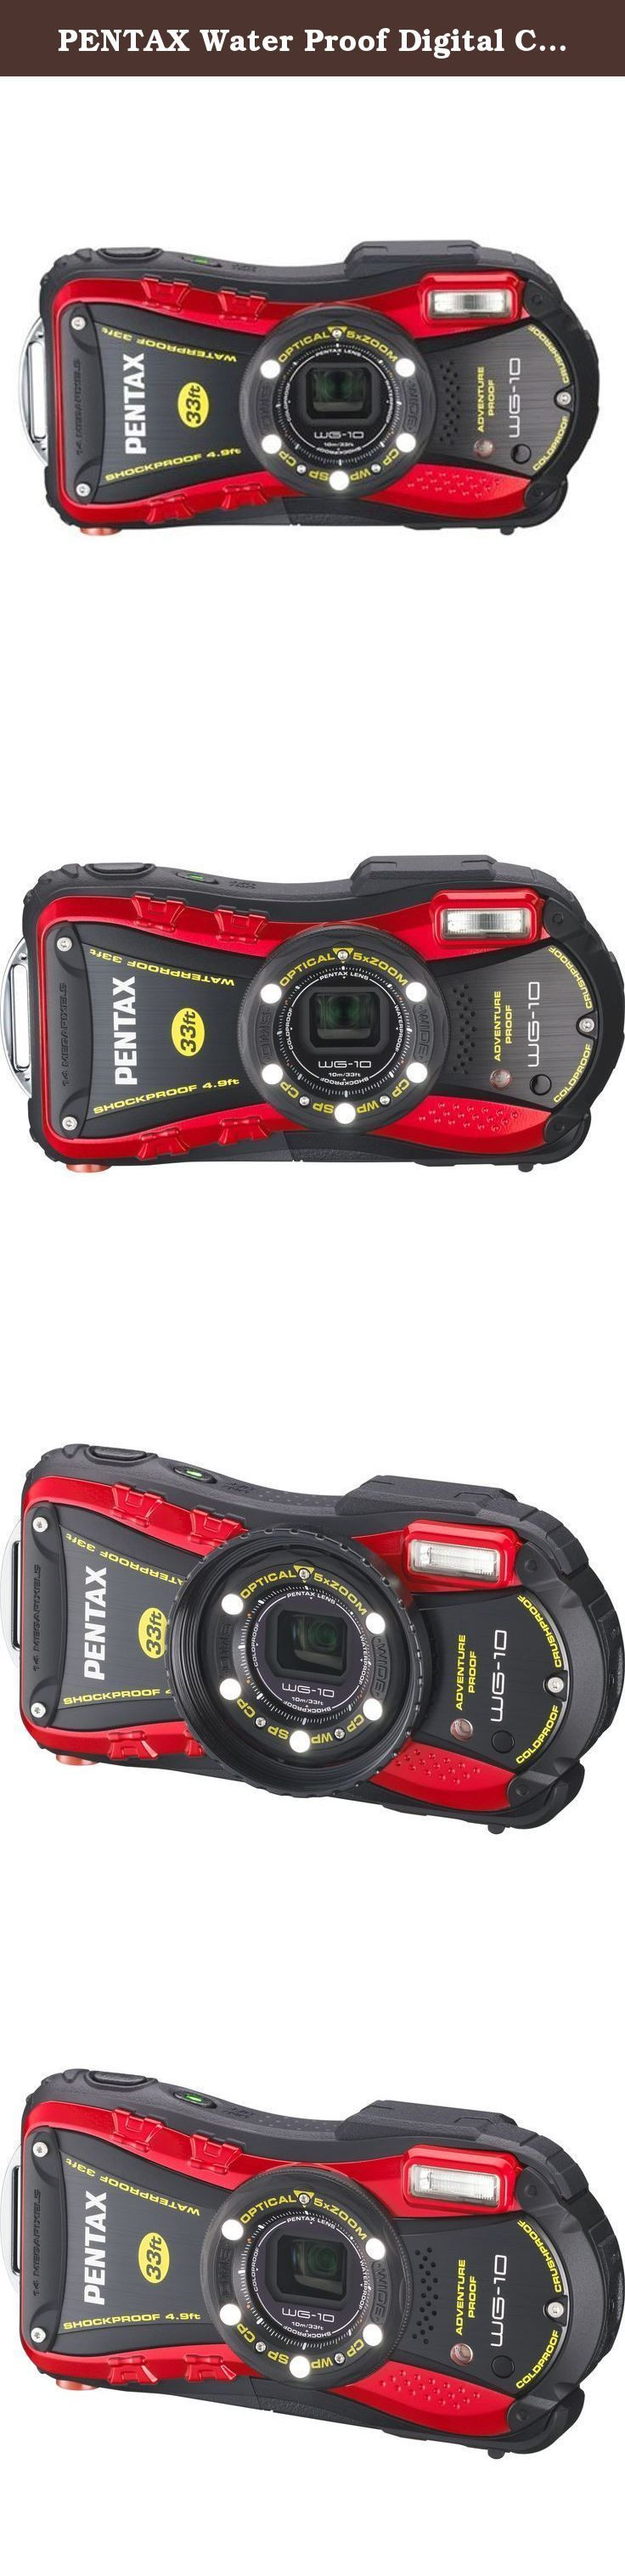 PENTAX Water Proof Digital Camera PENTAX WG-10 Red 1cmMacro Macro Stand PENTAX WG-10RD. Camera Features: Underwater Capability, 1080p HD Movie Recording, Face Detection Technology, Carabiner, Auto Scene Selector, Auto Focus, Digital Image Stabilization, Blink Detection Flash Features: Forced Flash, Built-In Flash, Slow-Sync Flash, Red-Eye Reduction, Manual Override, Auto On/Off Lens Features: Image Stabilization, Weather-resistant, Wide Angle, Face Detection, Automatic Focus Lock, Auto Focus…